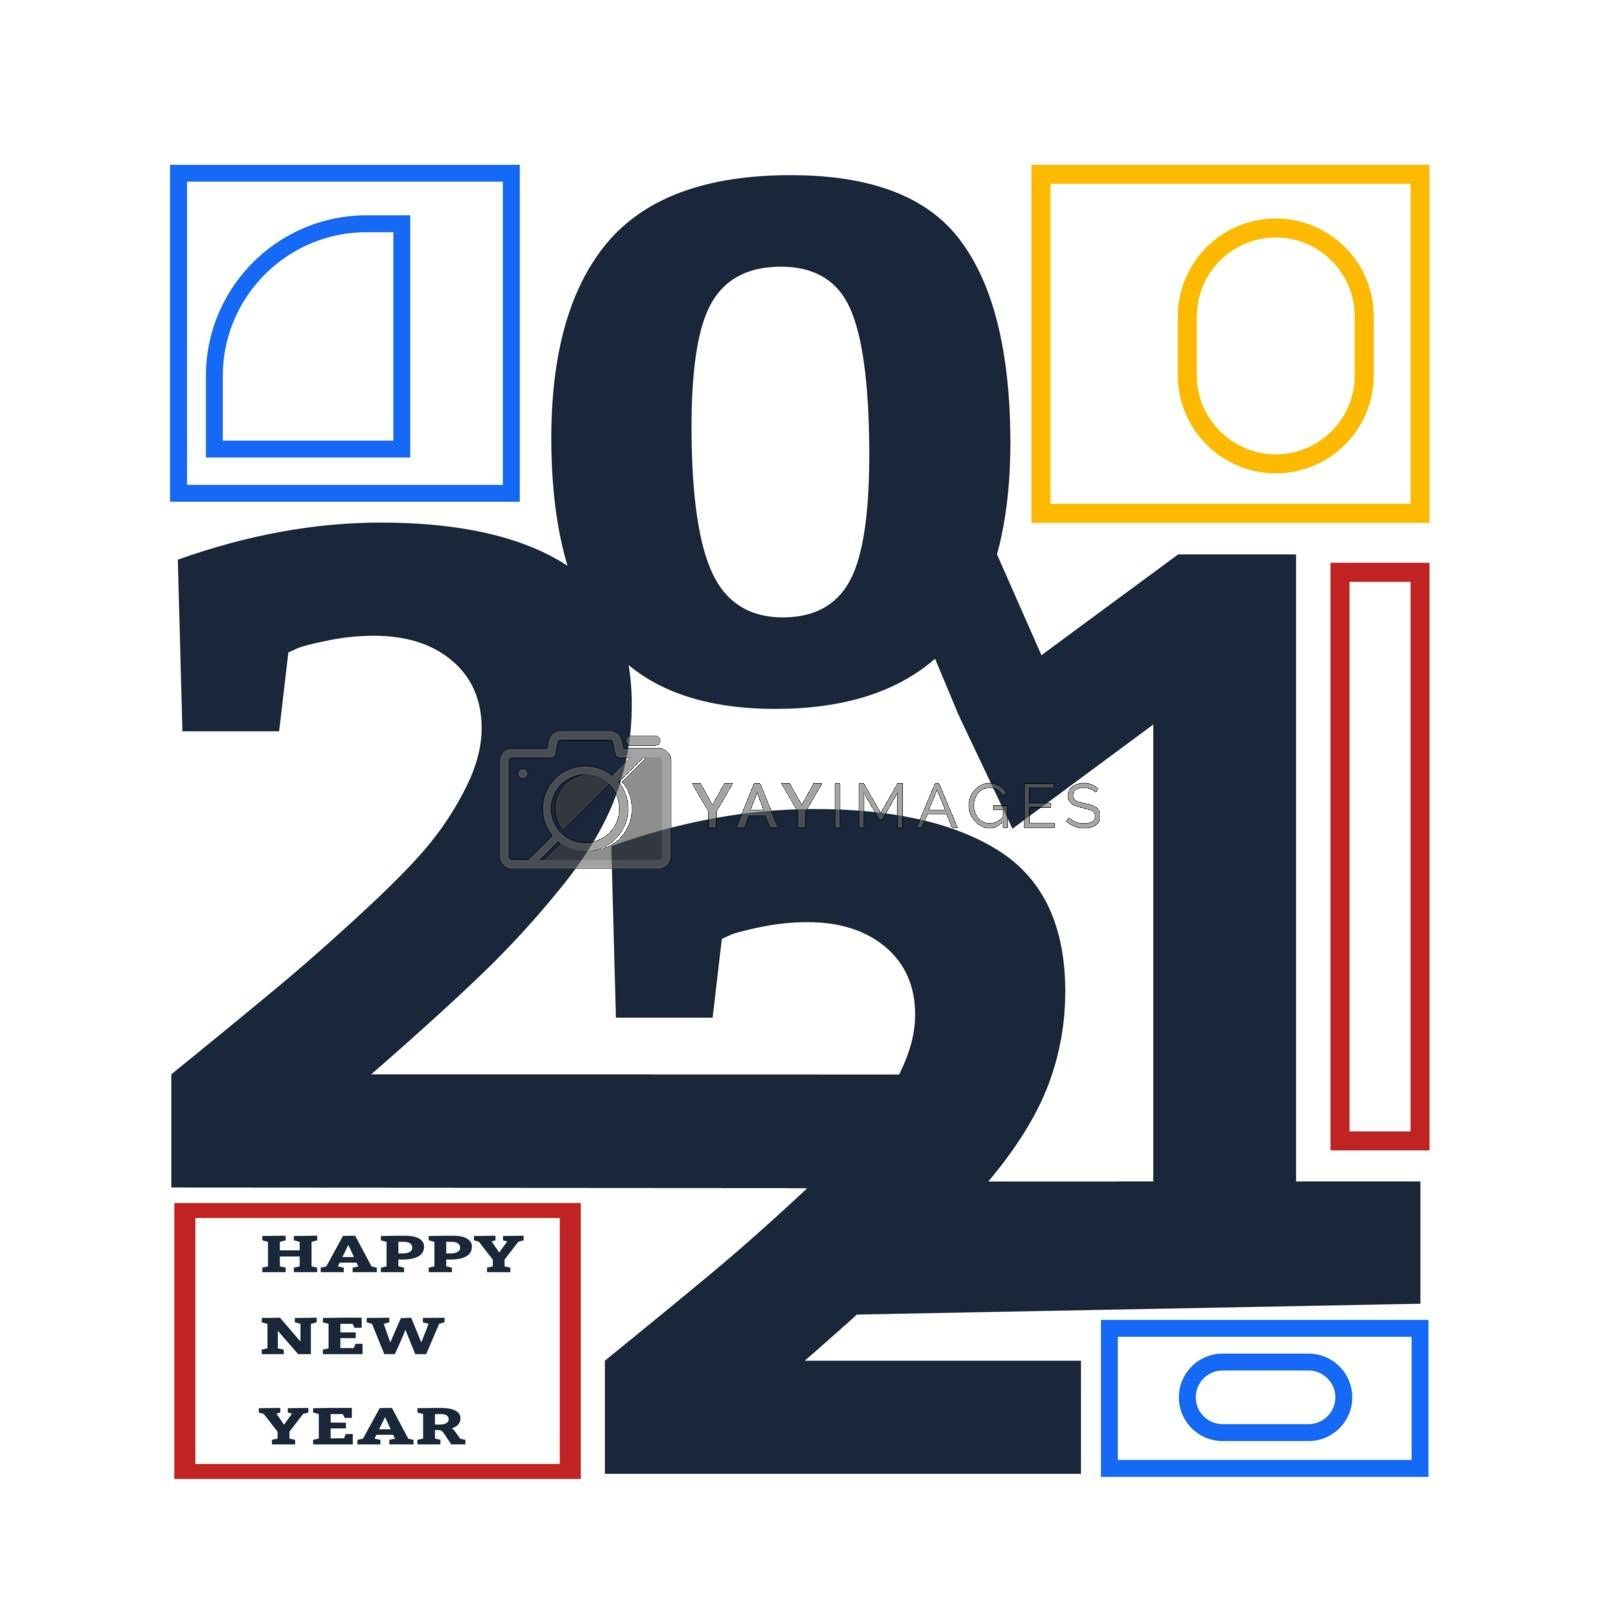 Happy new year 2021 design template. Design for calendar, greeting cards or print